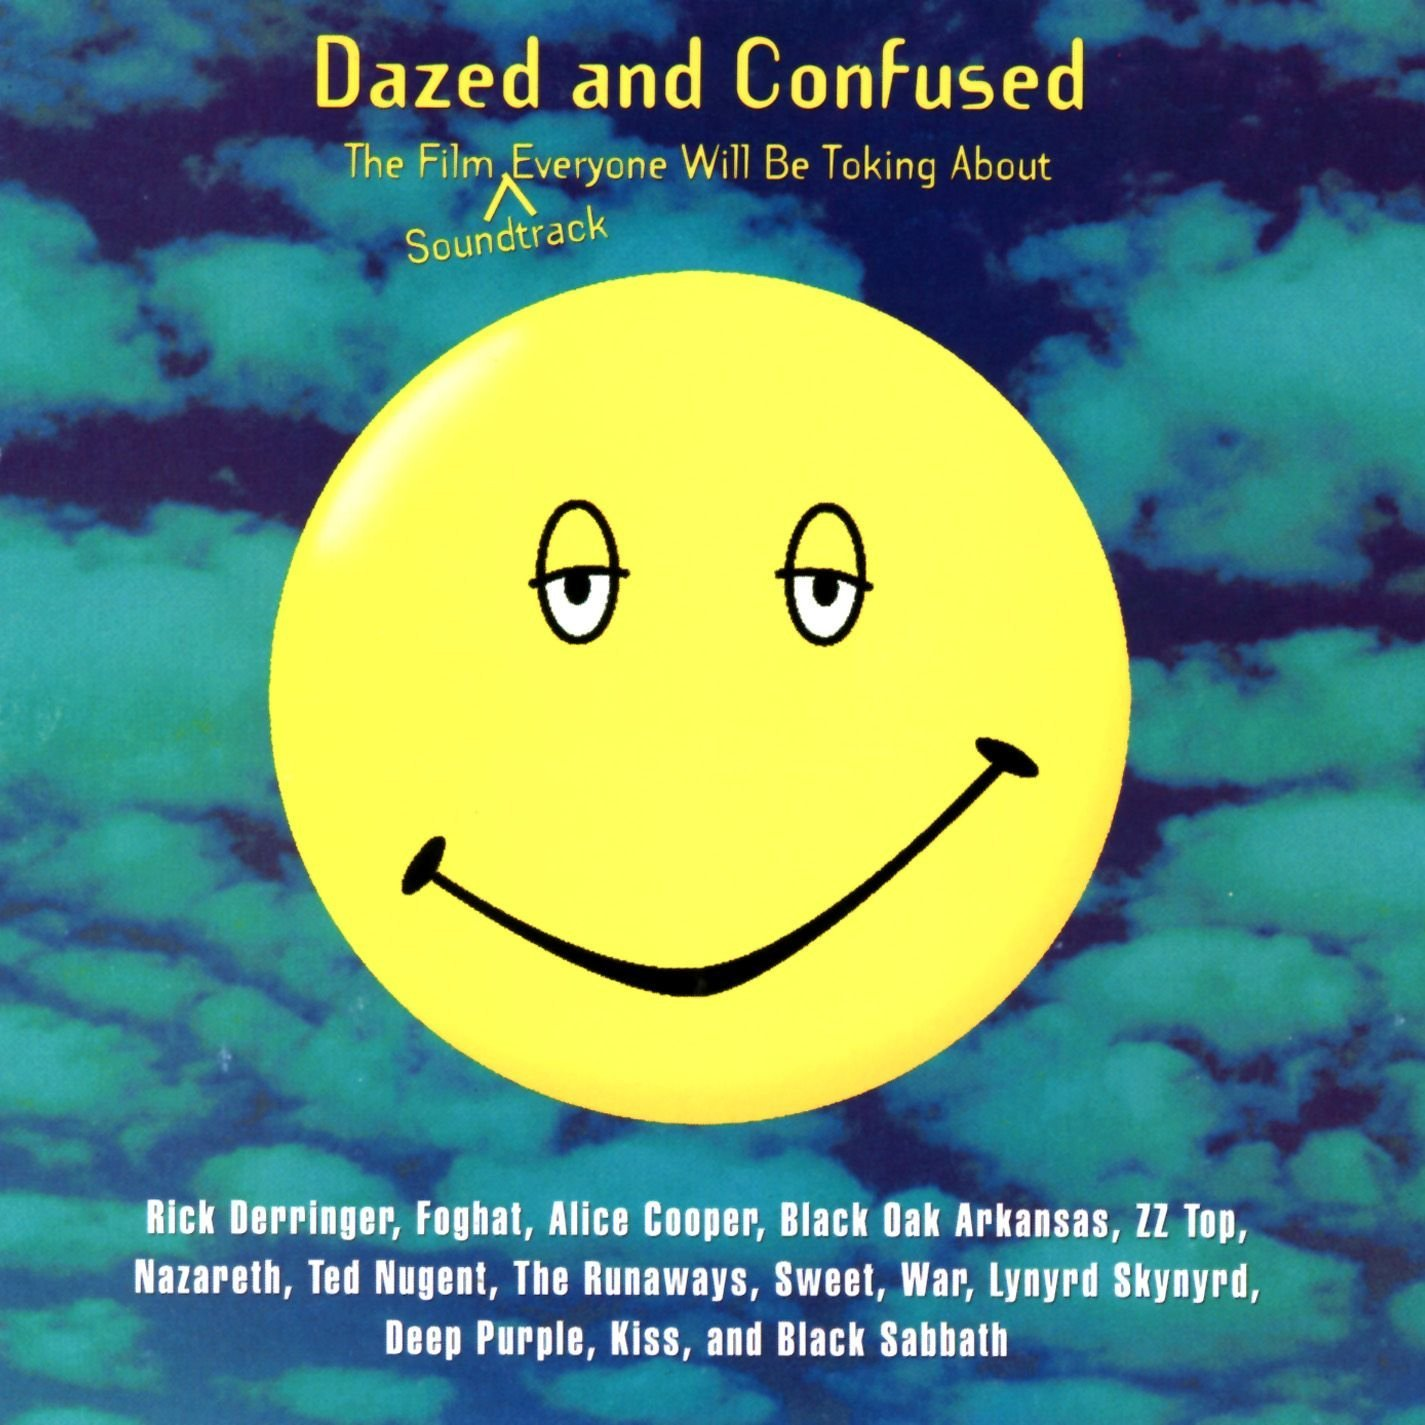 dazed and confused The 100 Greatest Movie Soundtracks of All Time